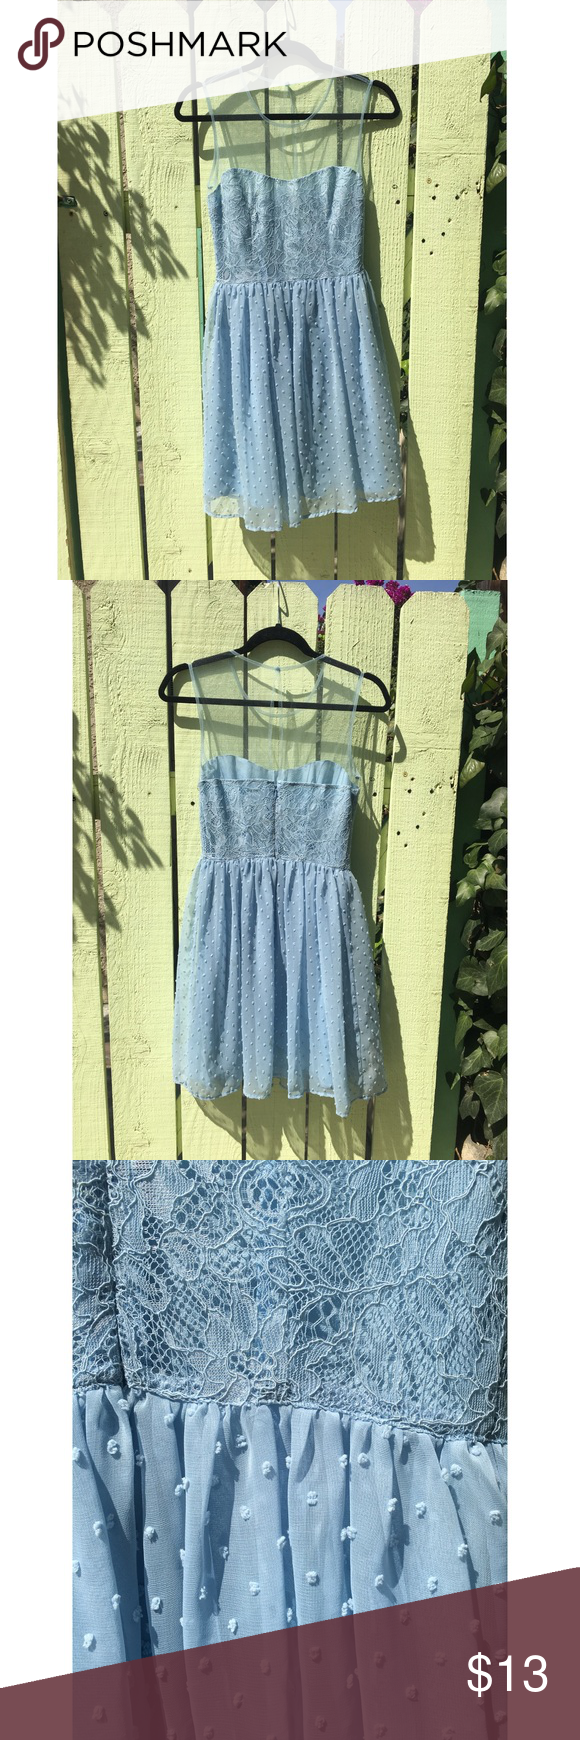 Rodarte For Target Baby Blue Dress Sz 5 This Baby Blue Dress Is Dreamy The Details Are On The Bodice And Skirt Baby Blue Dresses Blue Dresses Clothes Design [ 1740 x 580 Pixel ]